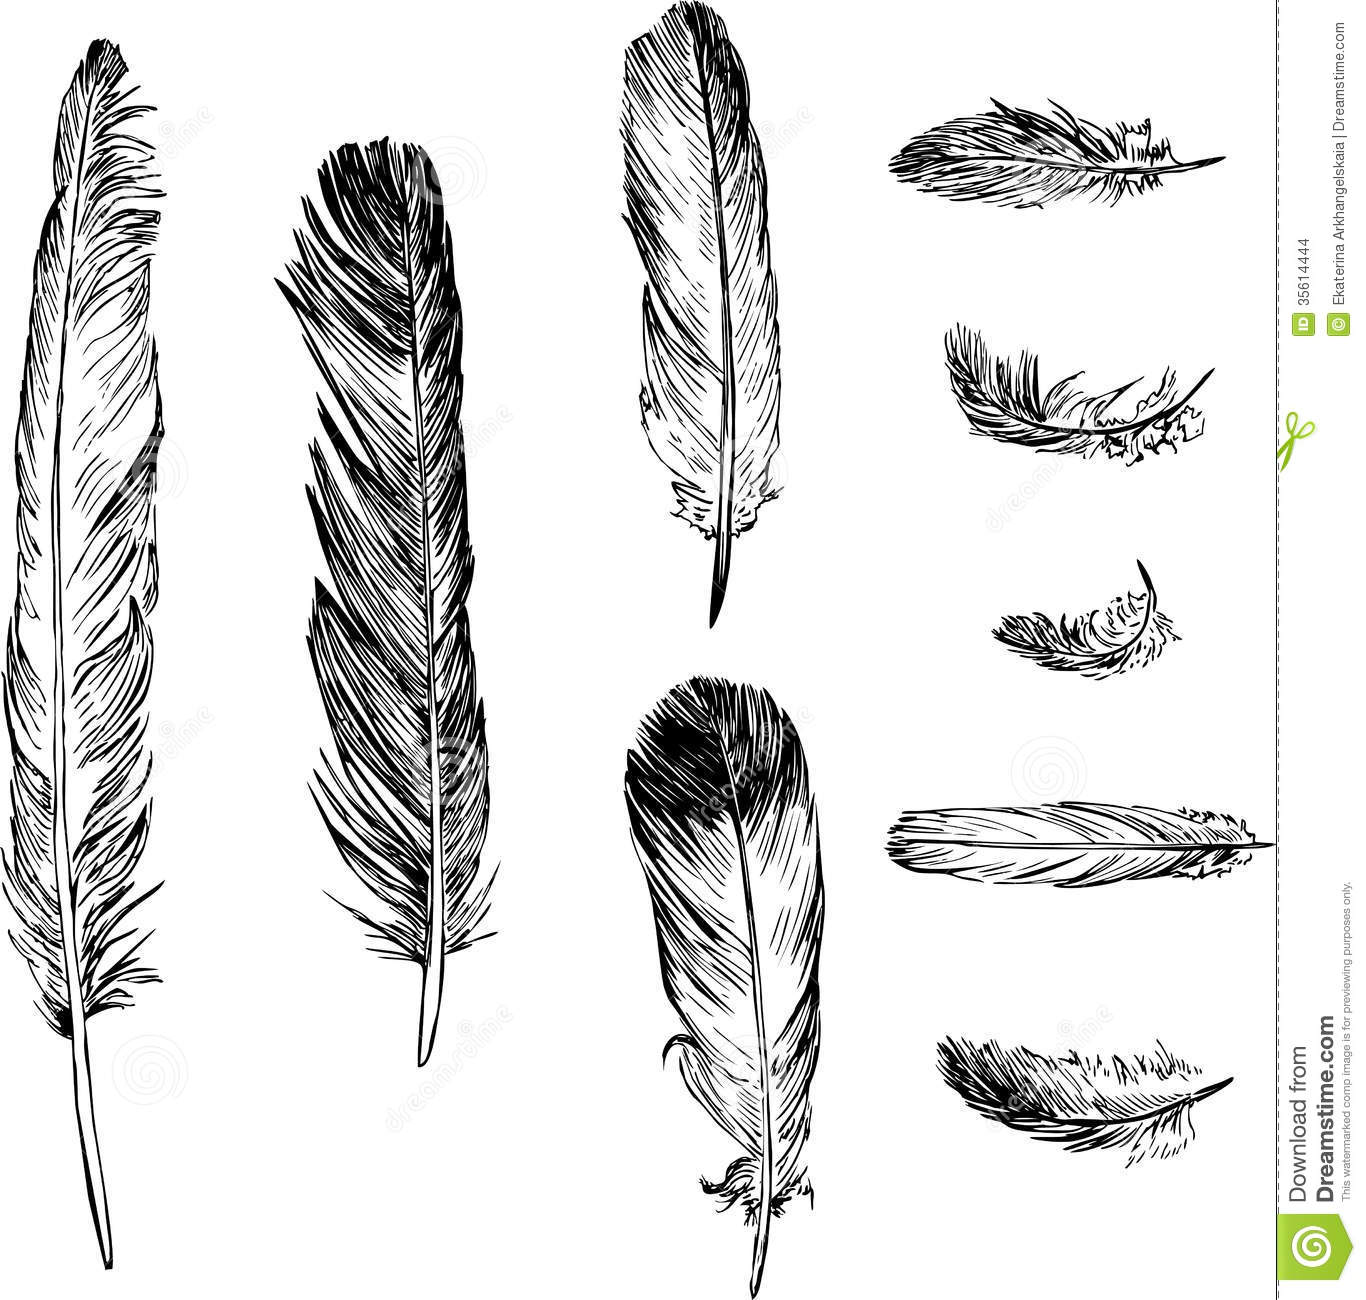 Disegno Piuma Set Of Plumes Stock Vector Illustration Of Linear